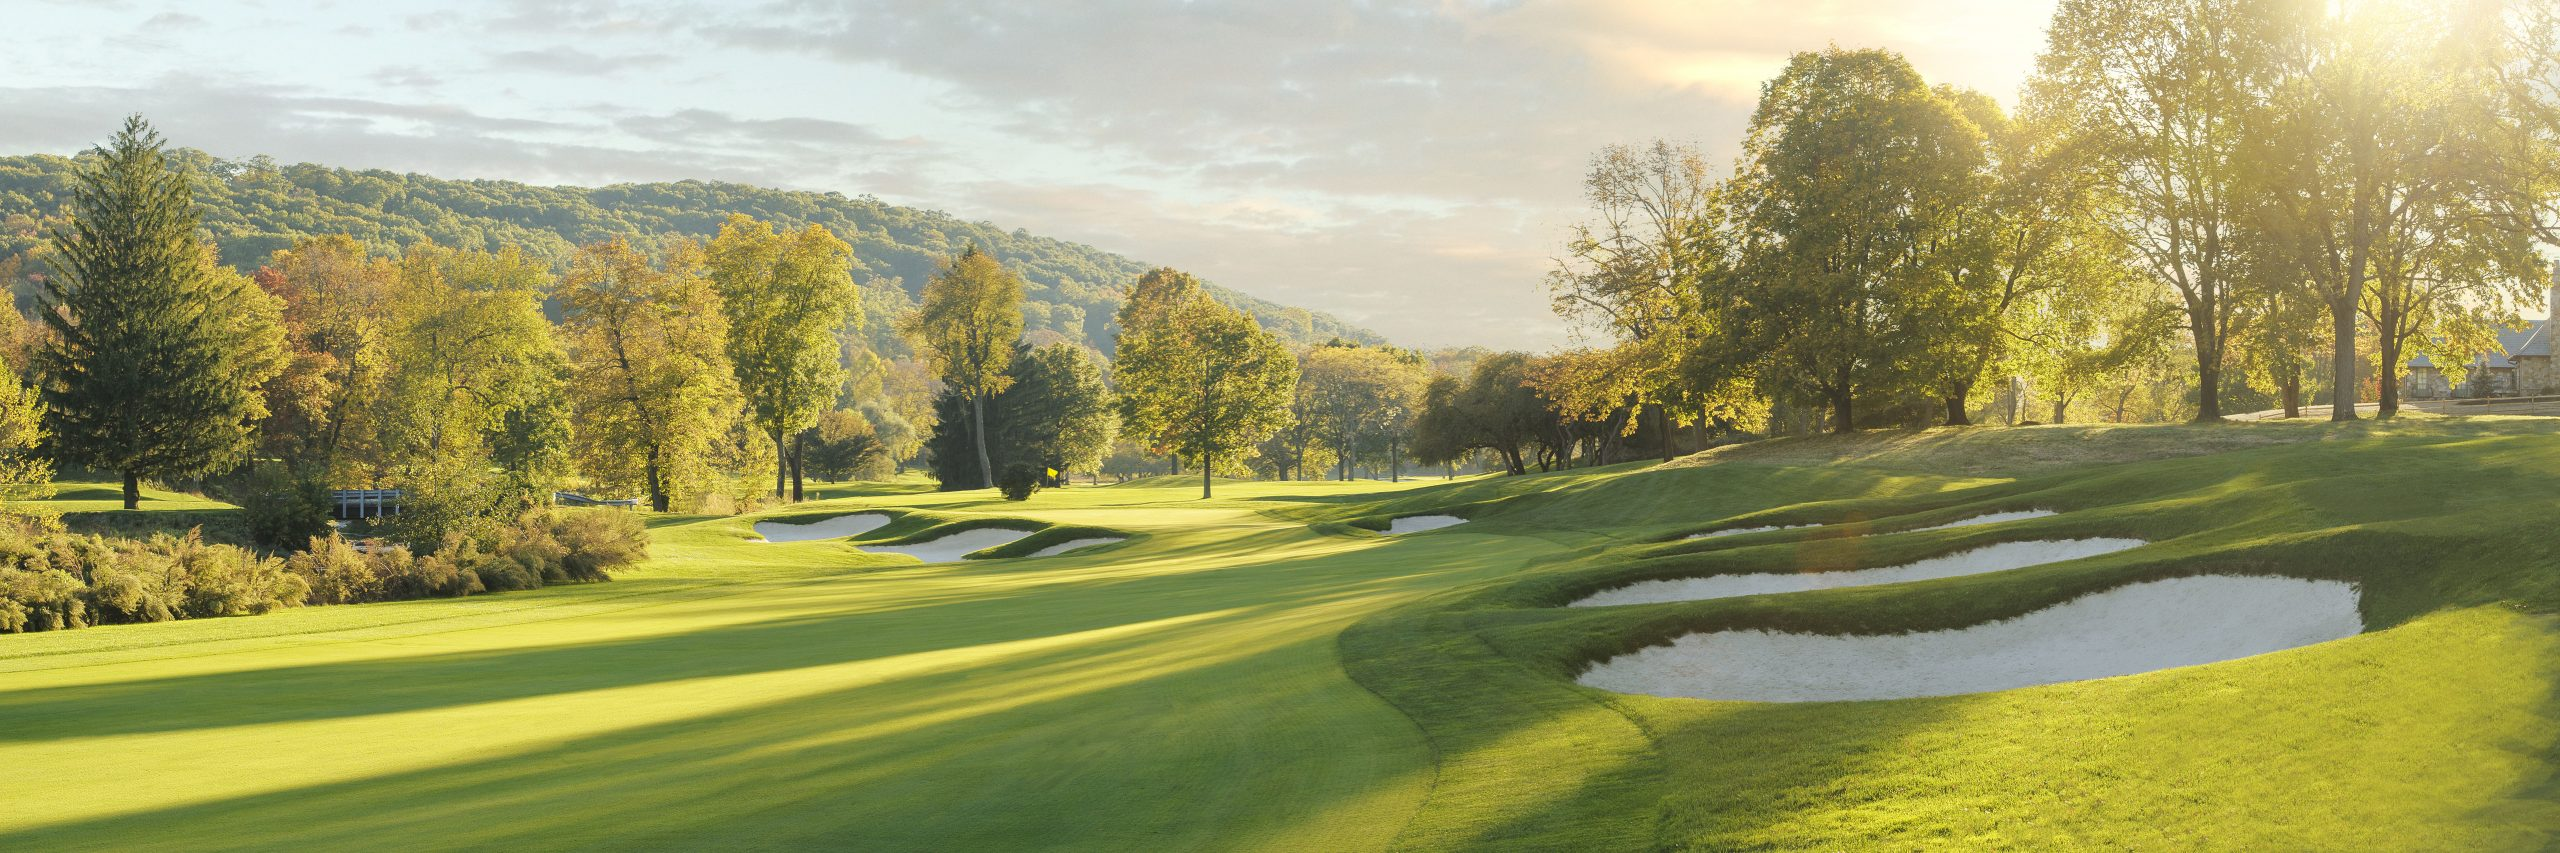 Golf Course Image - Saucon Valley Weyhill No. 17